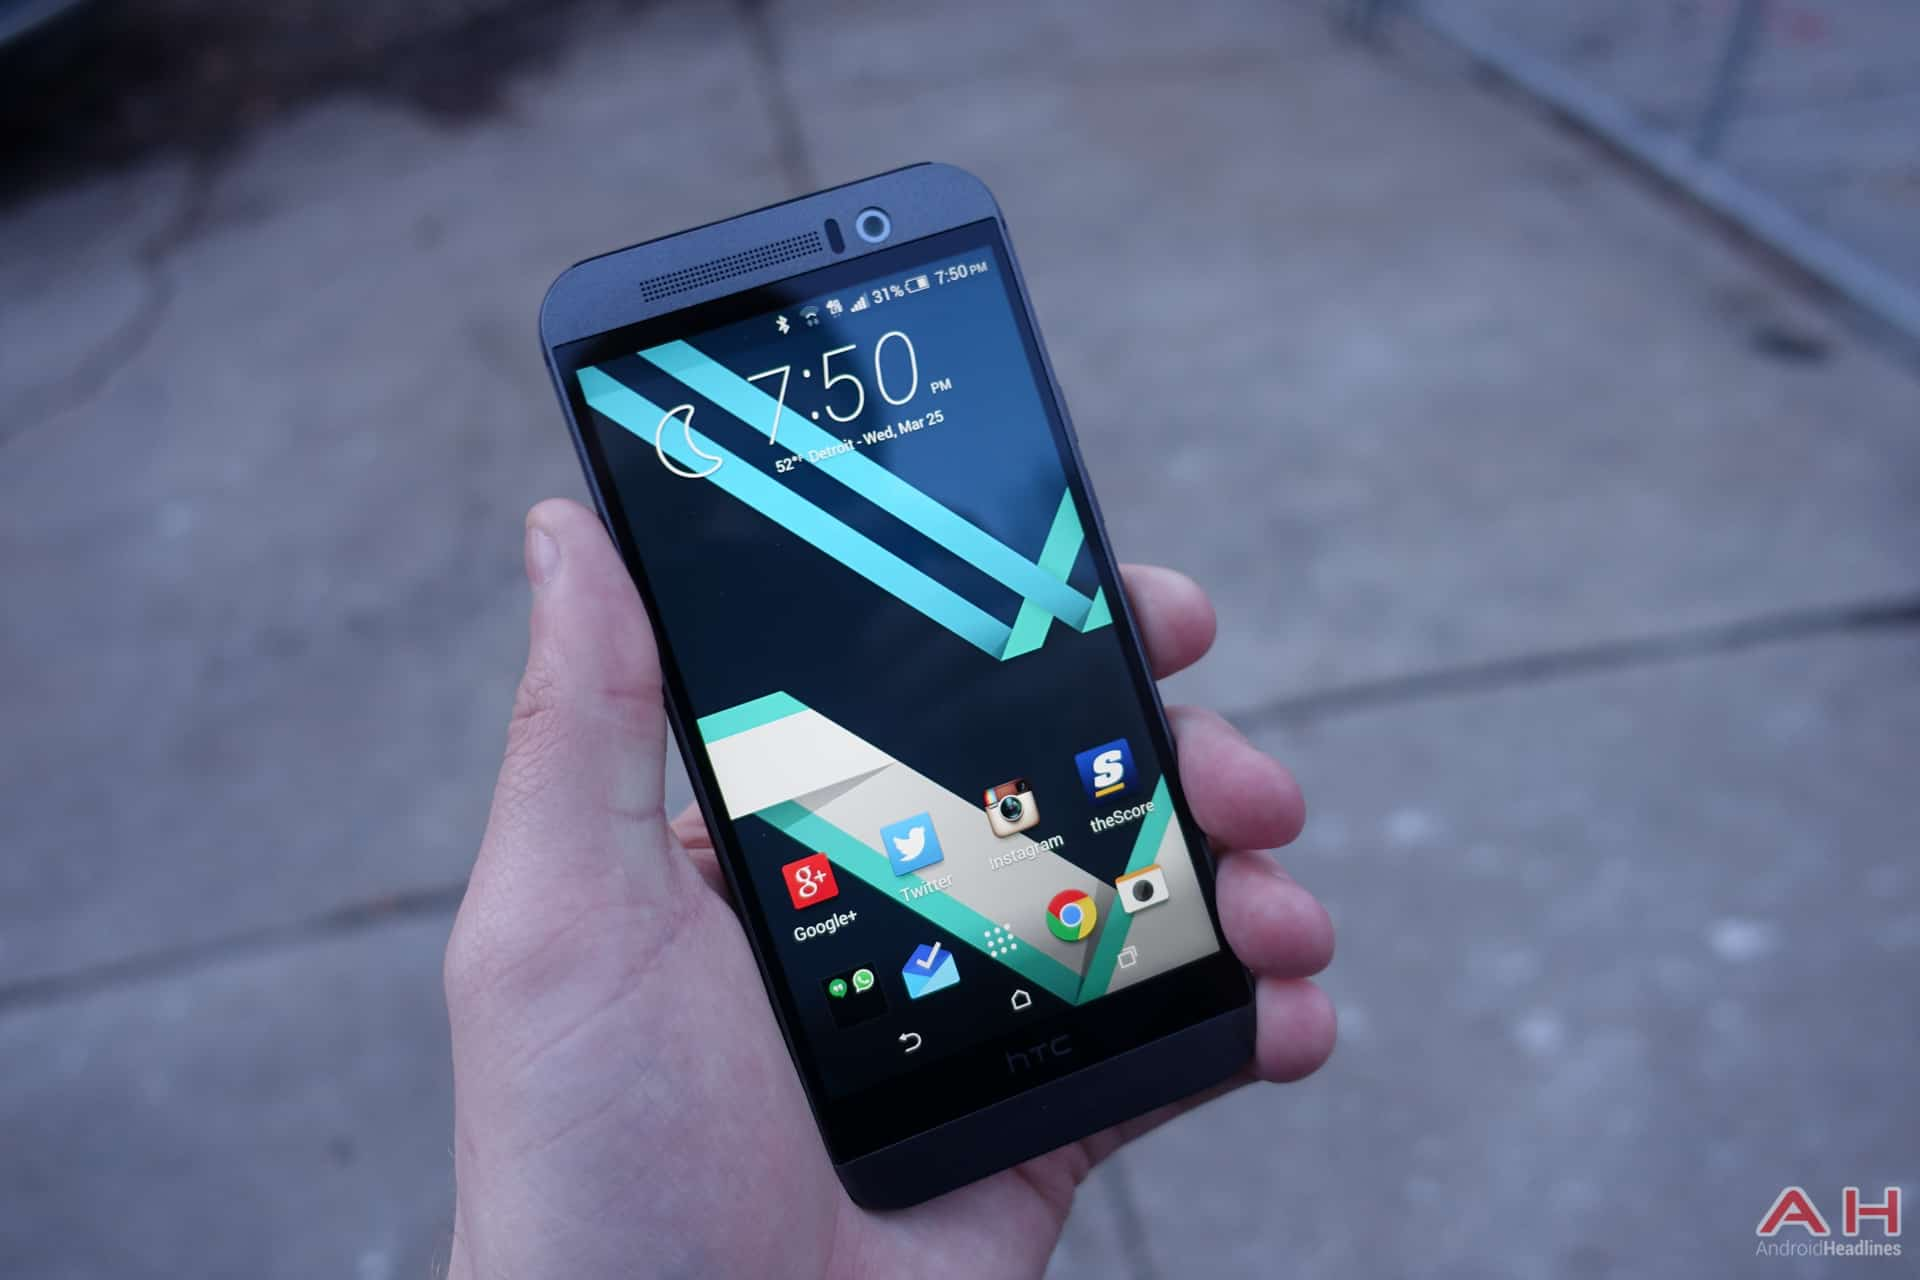 HTC-One-M9-Review-AH-2